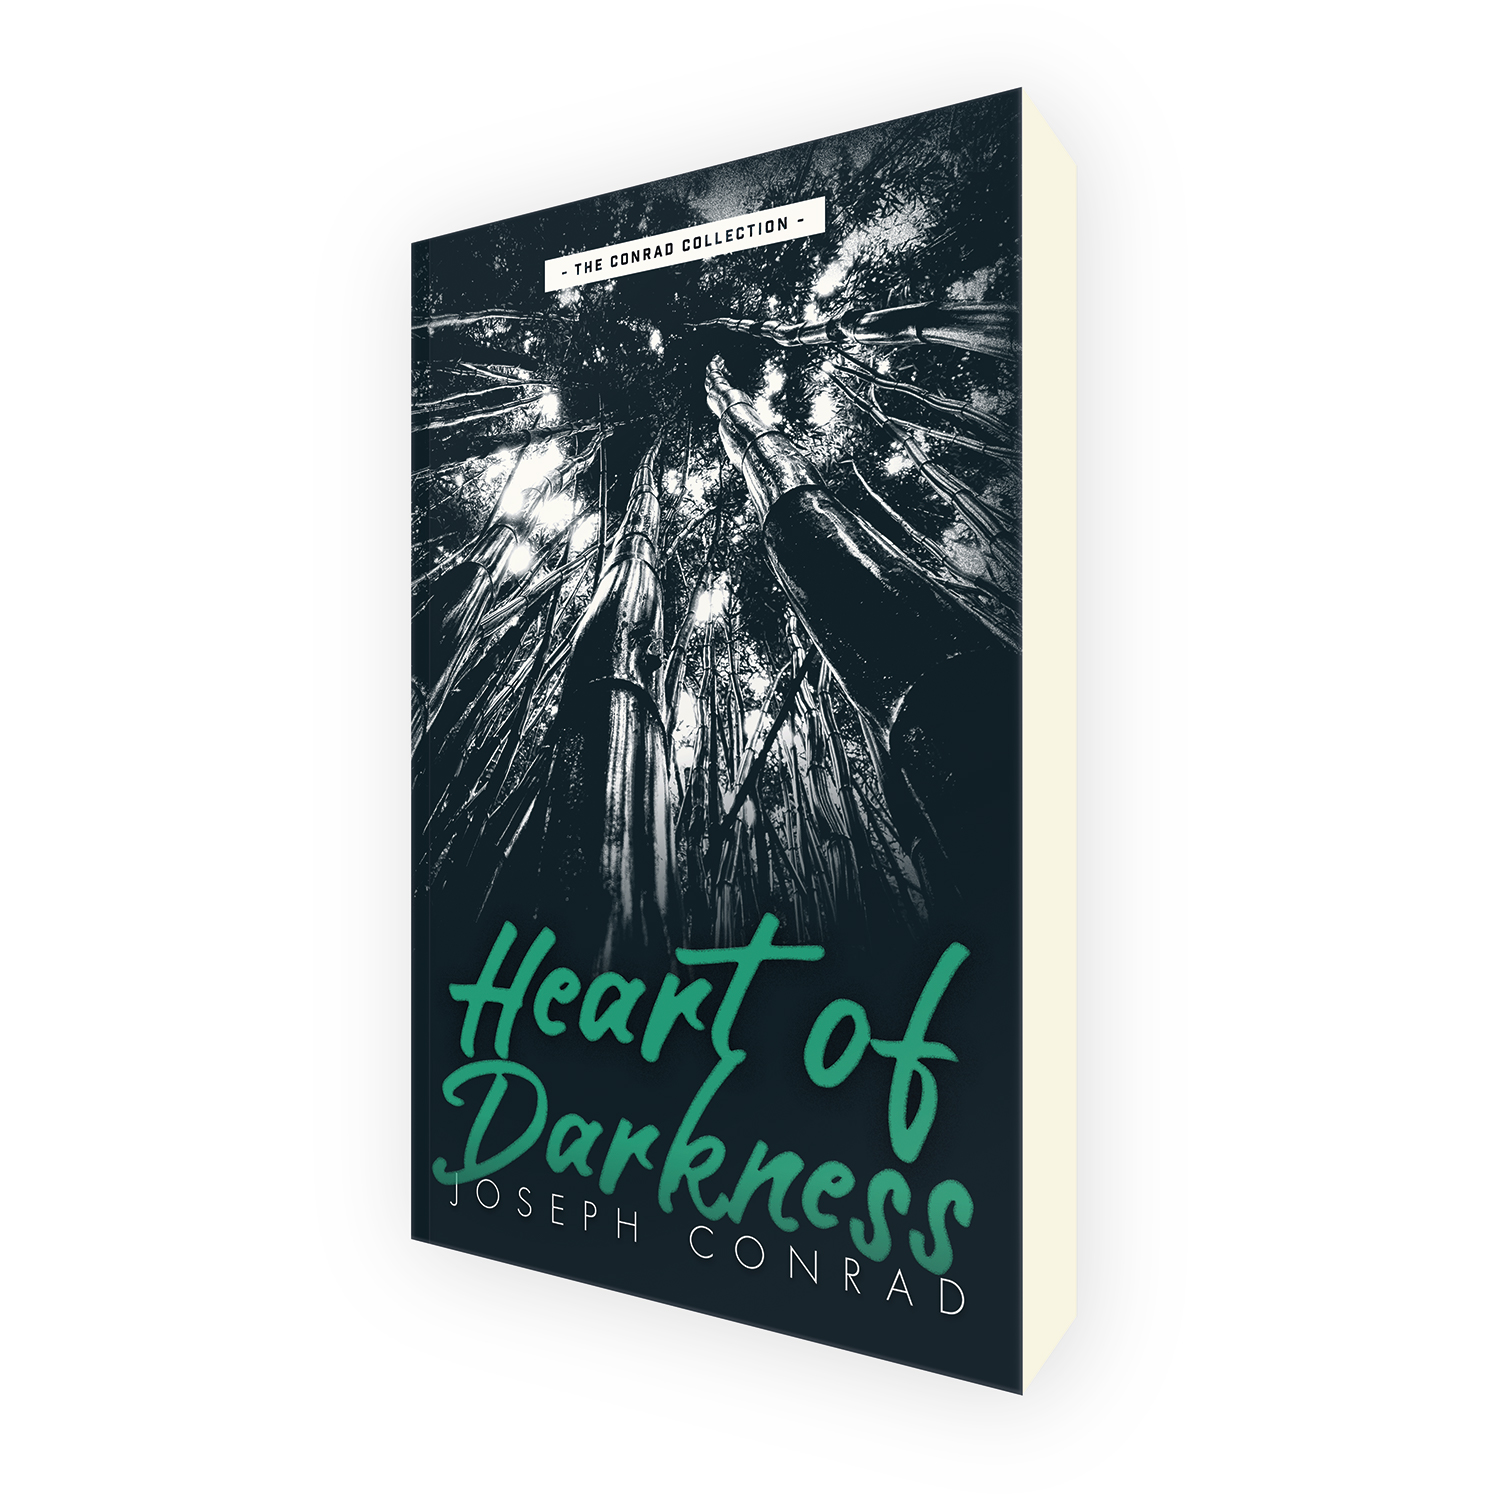 'Heart of Darkness' is a bespoke cover design for the classic novel by Joseph Conrad. The book cover was designed by Mark Thomas, of coverness.com. To find out more about my book design services, please visit www.coverness.com.